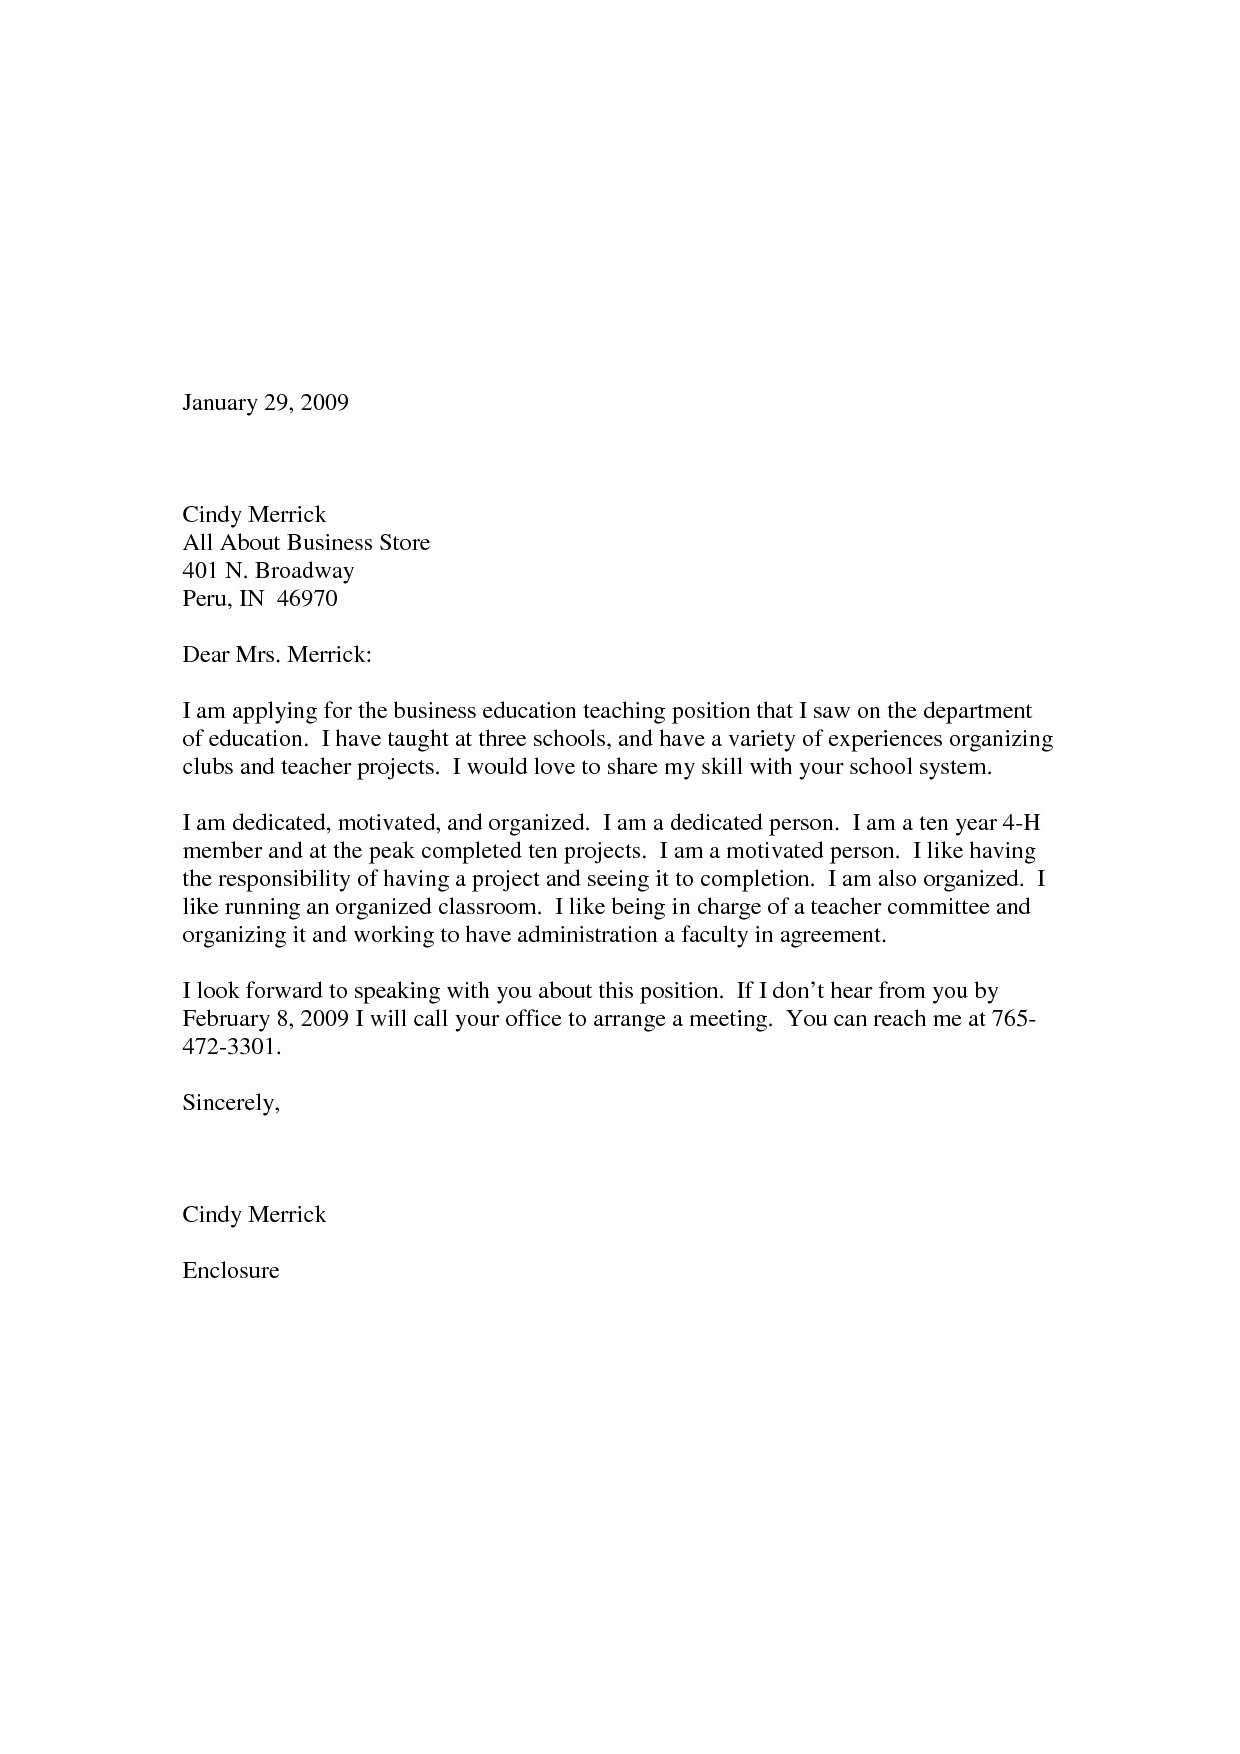 Sample Application Letter for Elementary School Teacher